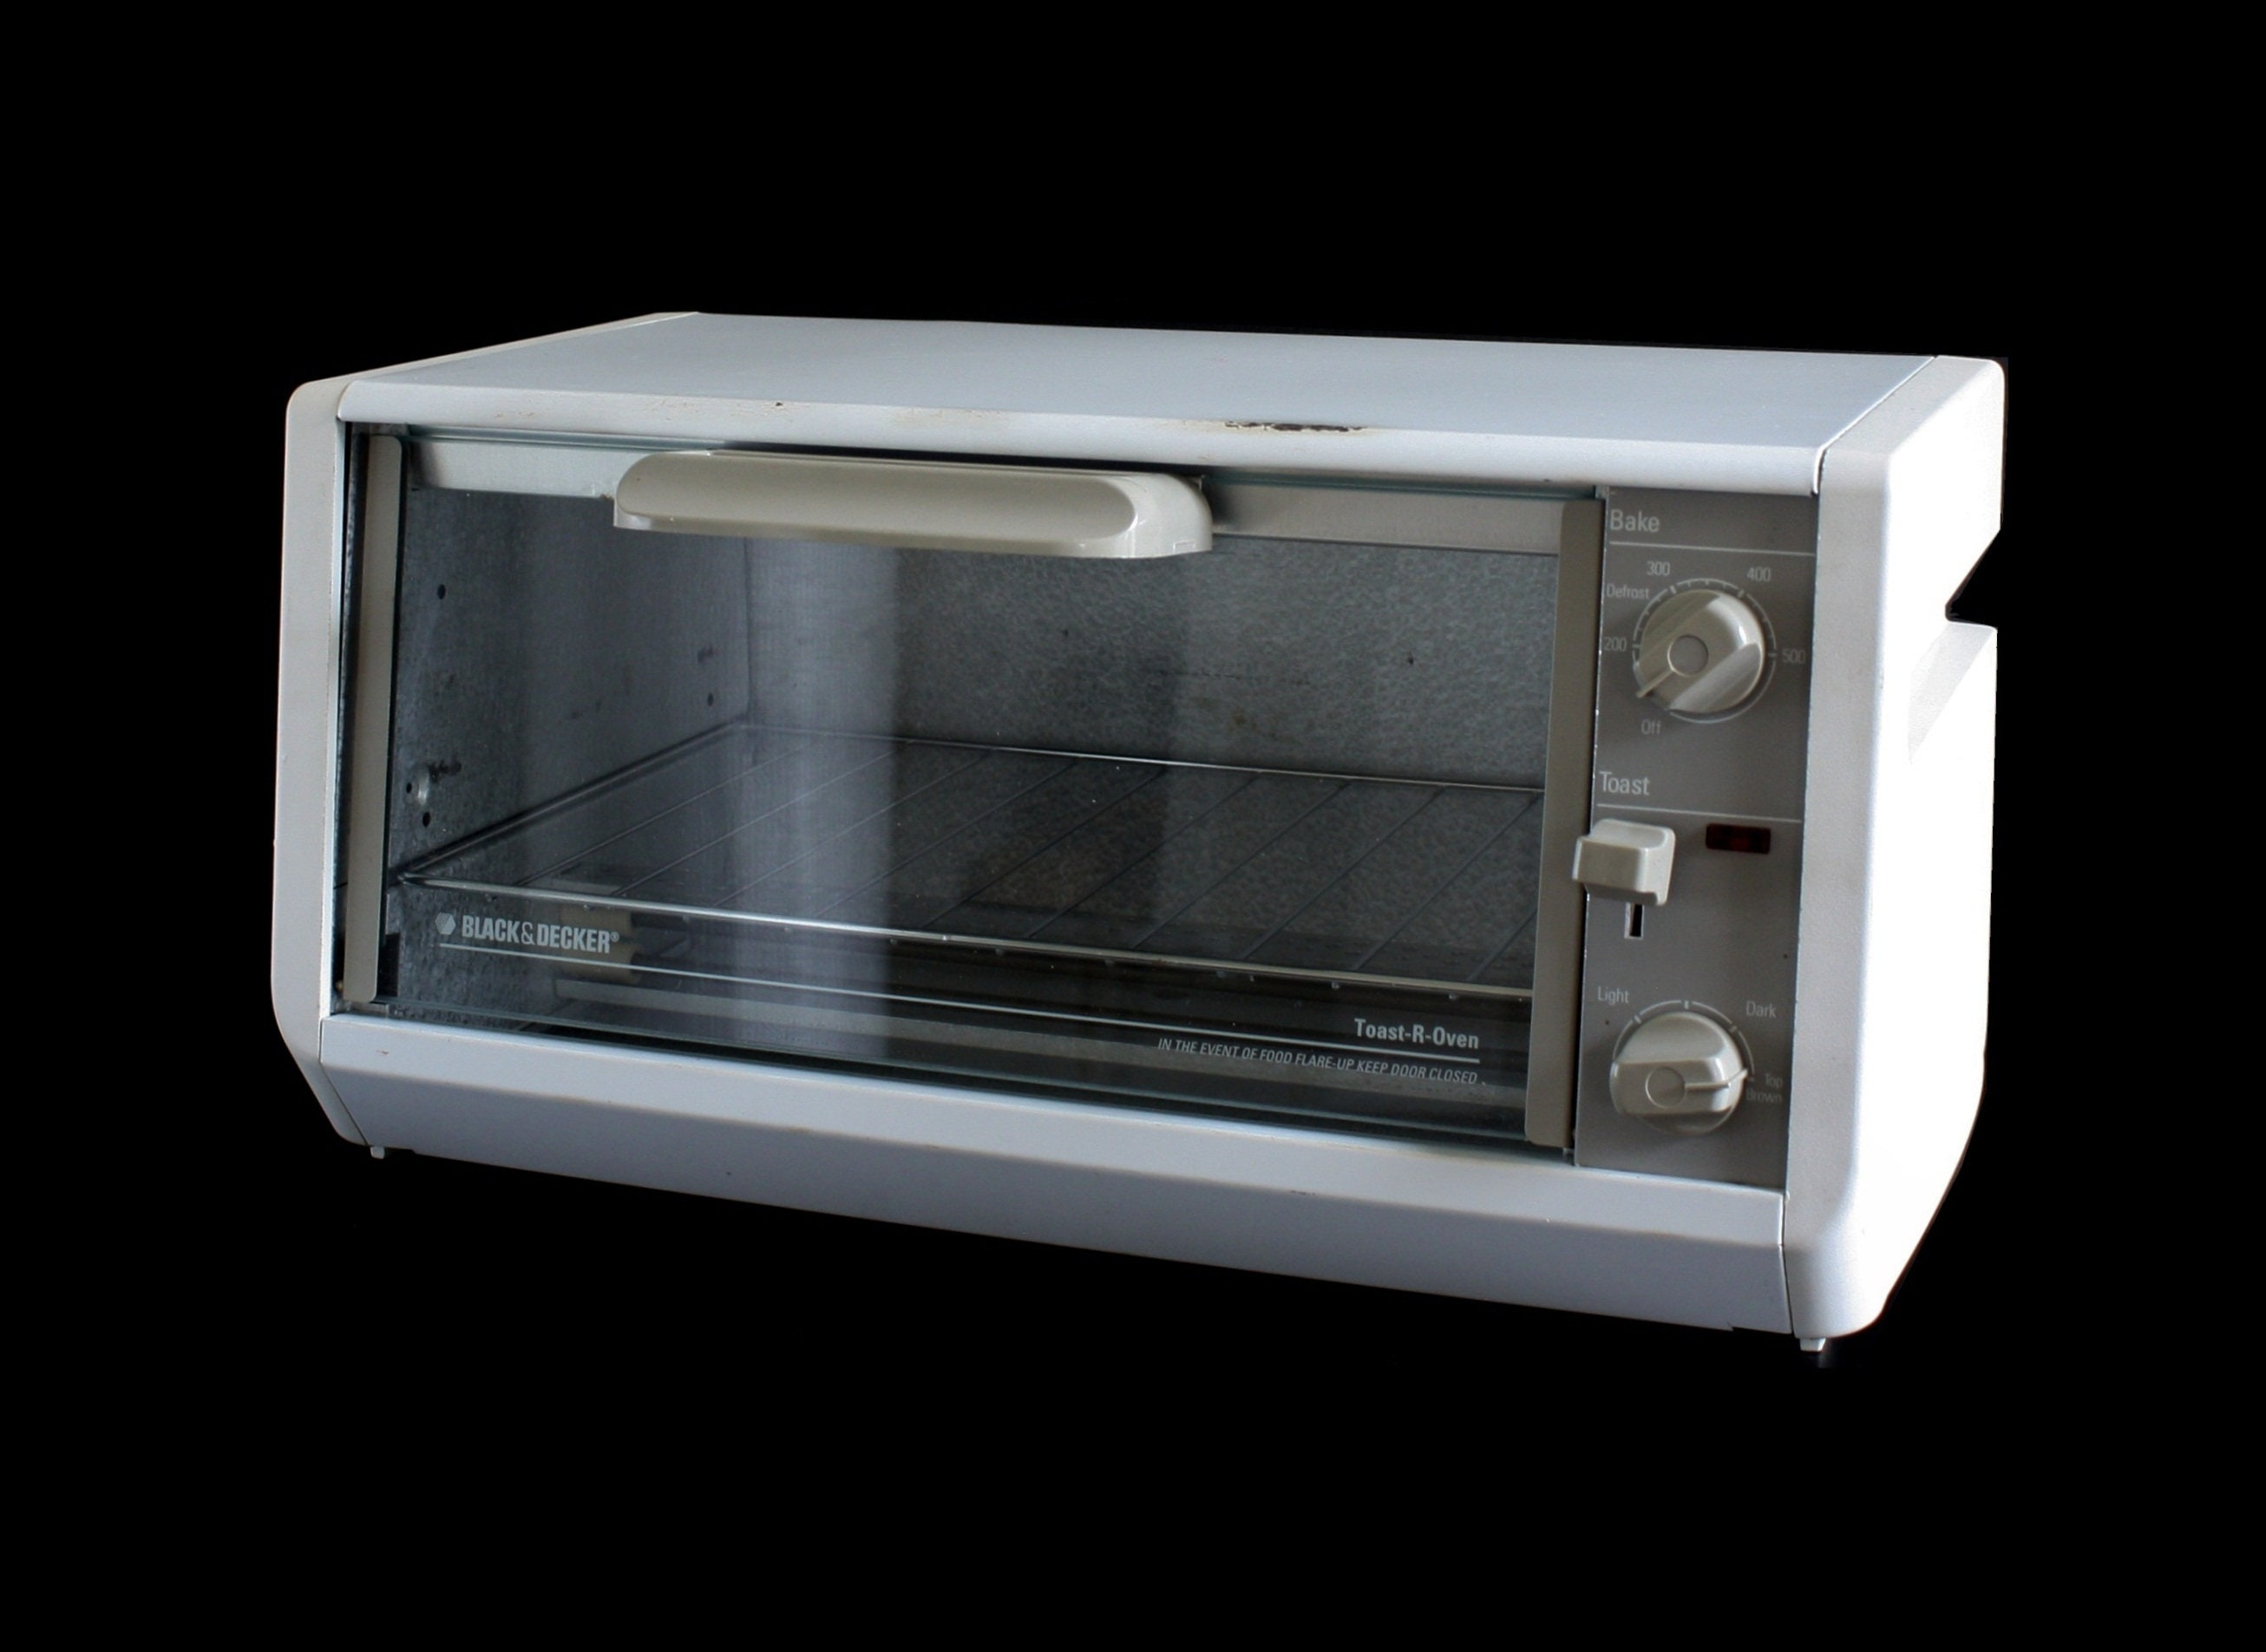 Black Amp Decker Spacemaker Toaster Oven Tro200 Ty2 Under Etsy